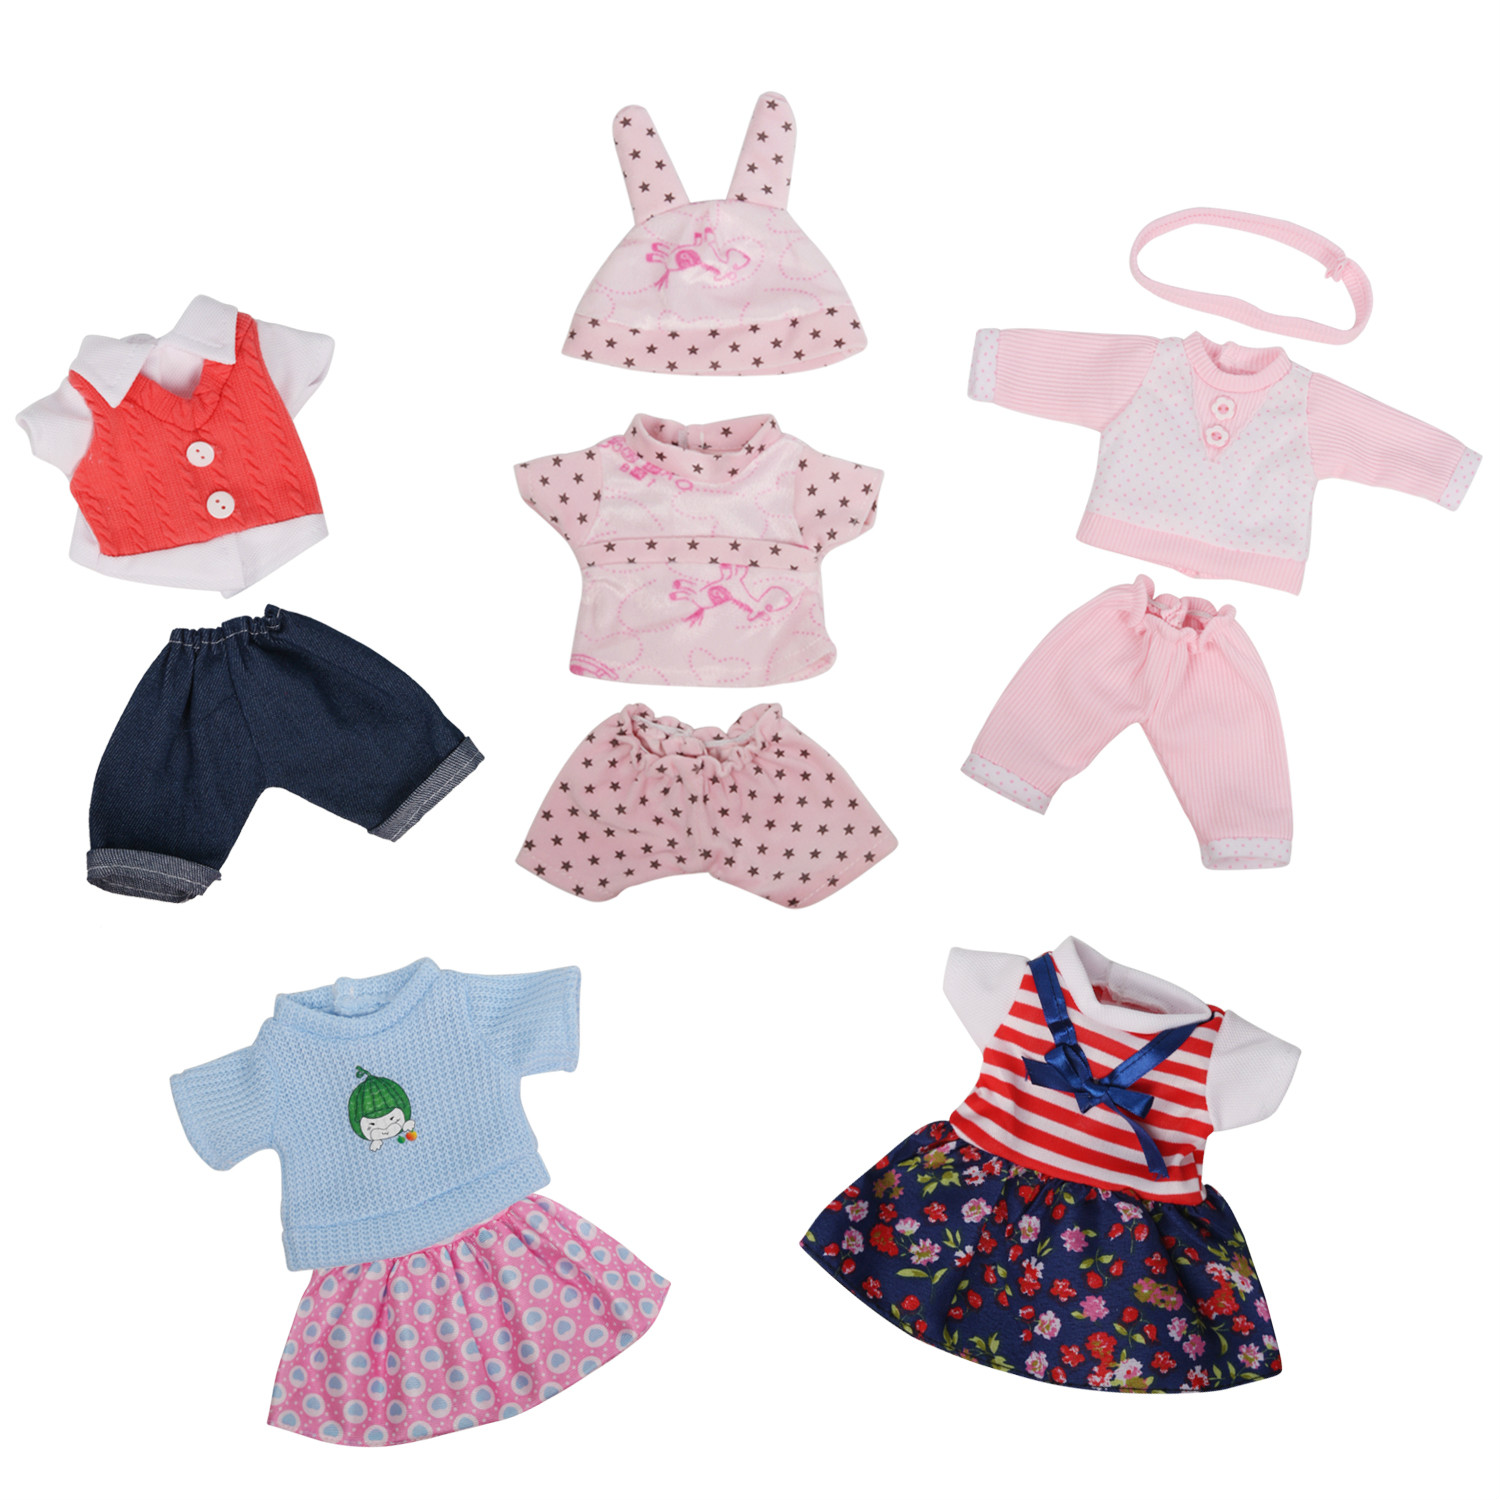 одежда для кукол 5Suits <font><b>Doll</b></font> Clothes for 12 Inch <font><b>Doll</b></font> New Born Baby Girl Dress Clothes Outfits Costumes Gown <font><b>Doll</b></font> Girl's Toy Set image